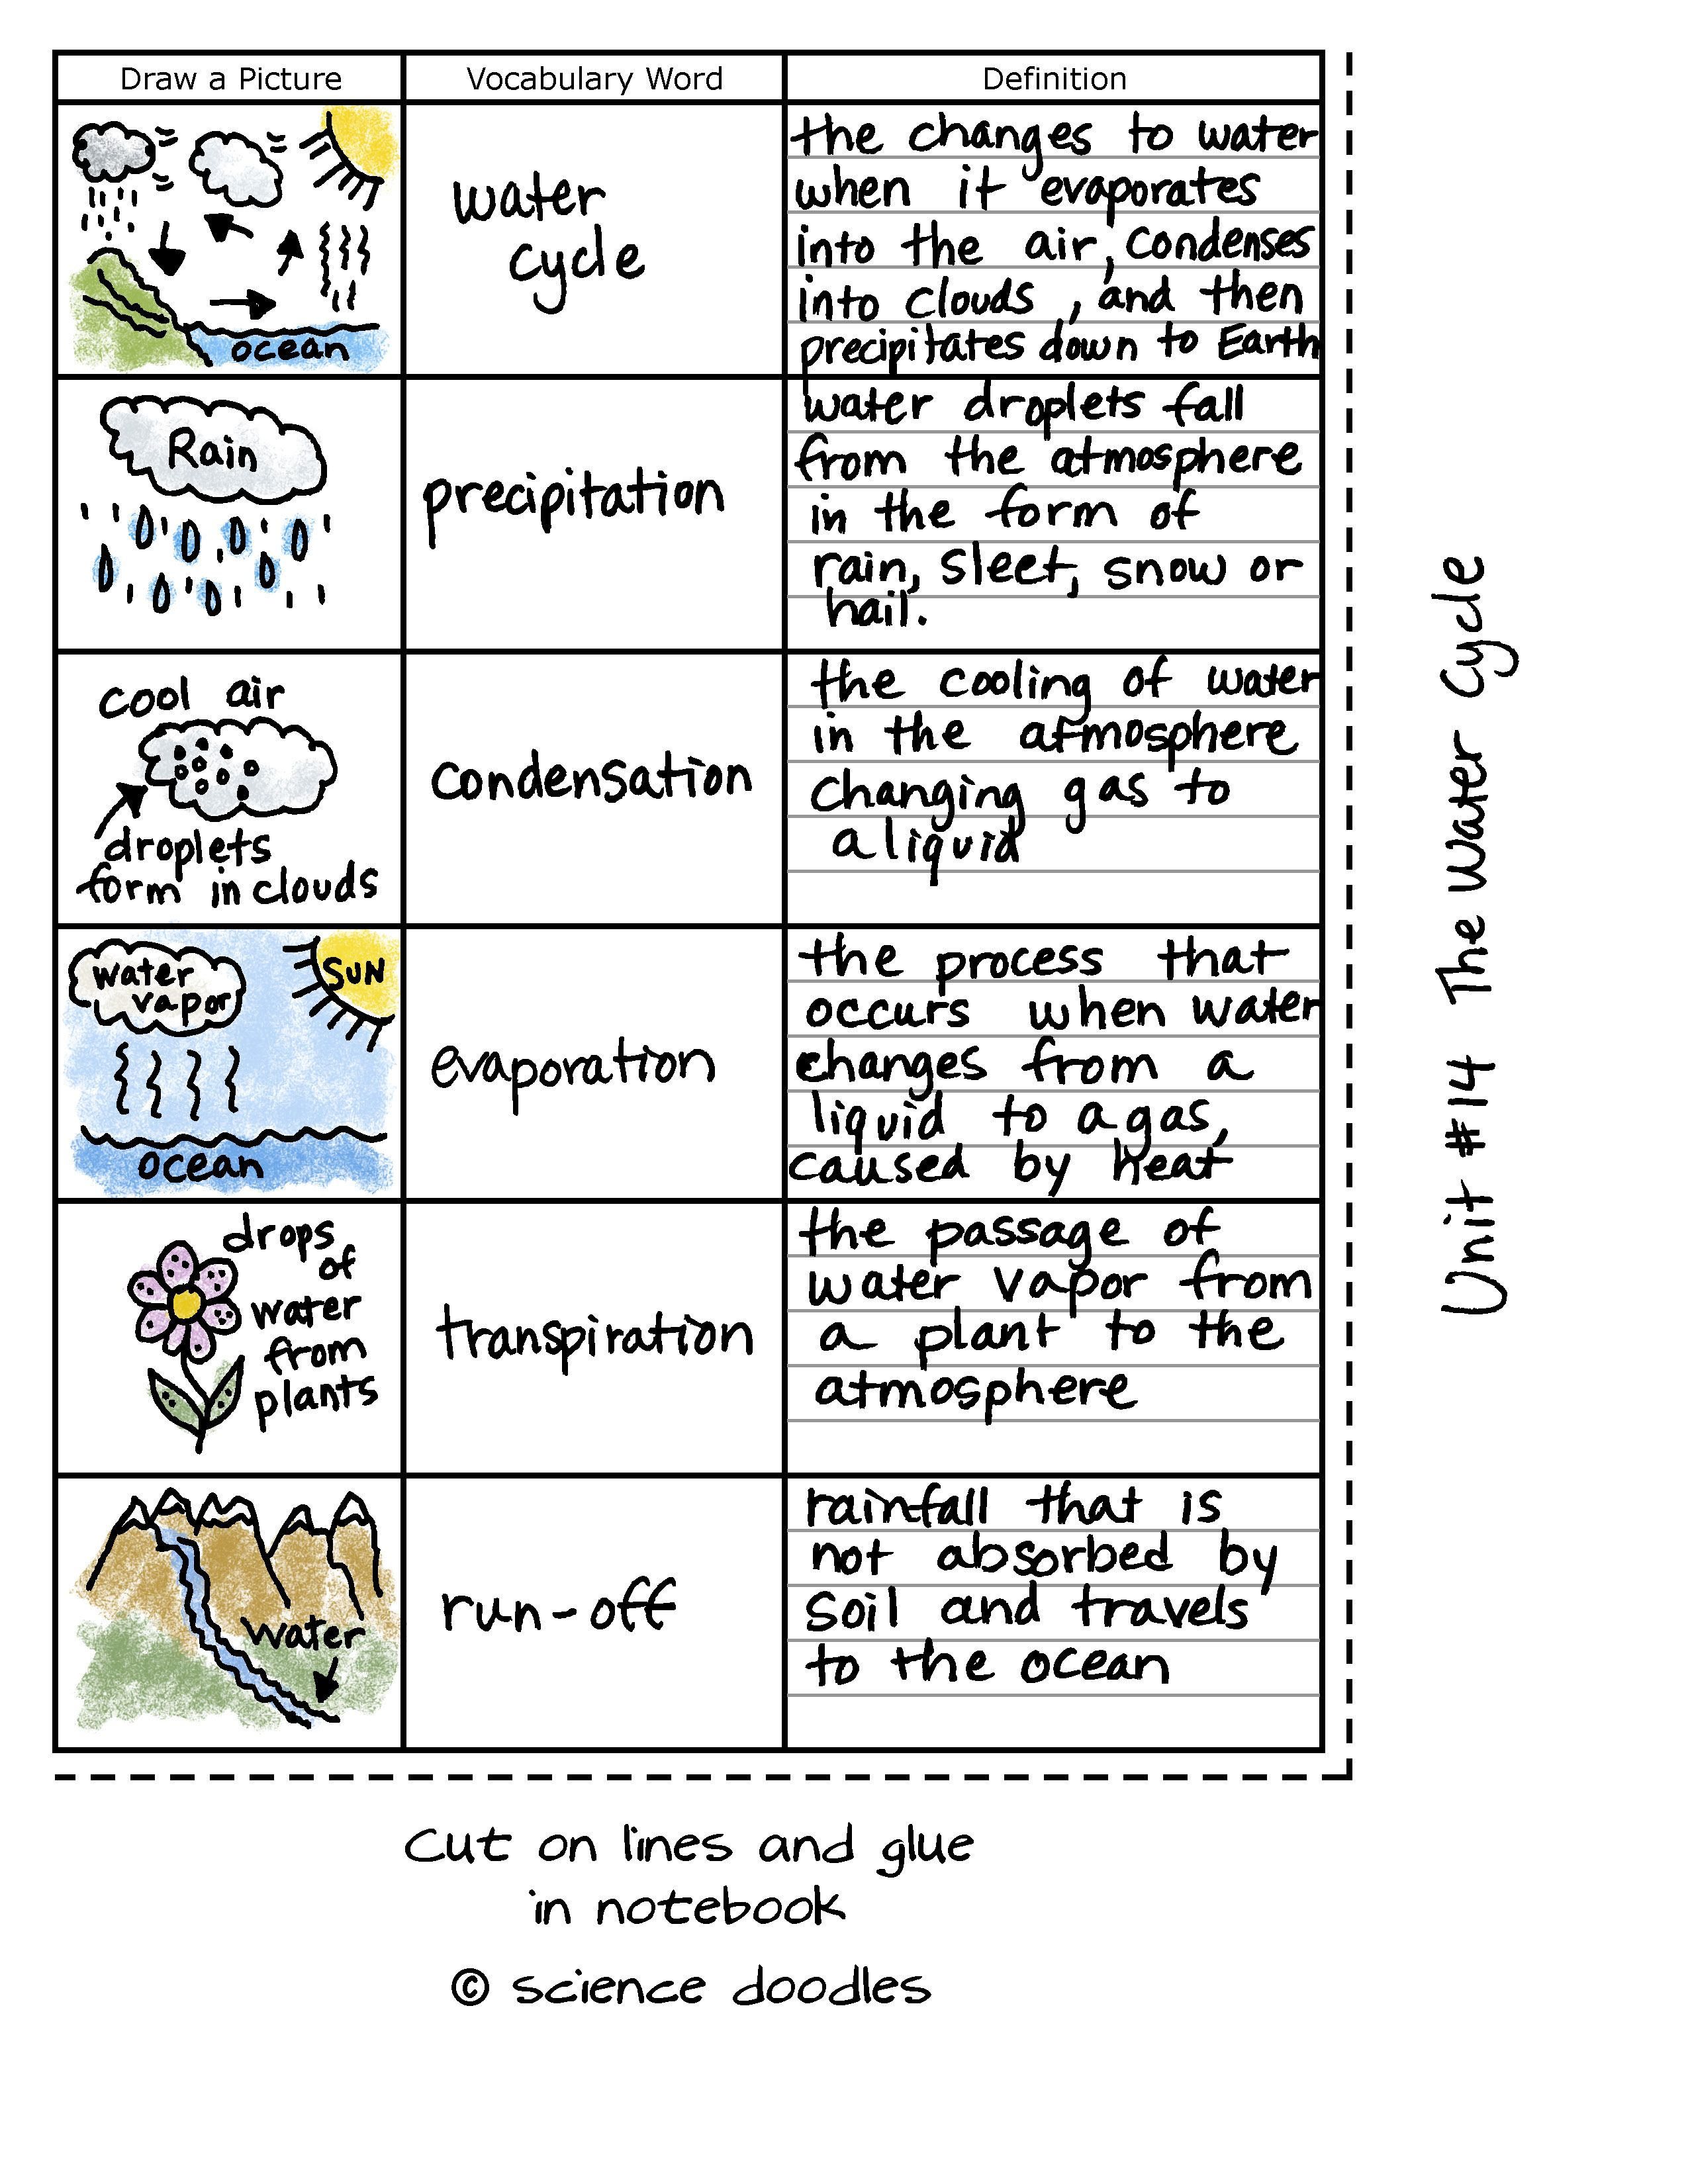 Worksheet Science Doodles Science Lessons Science Classroom